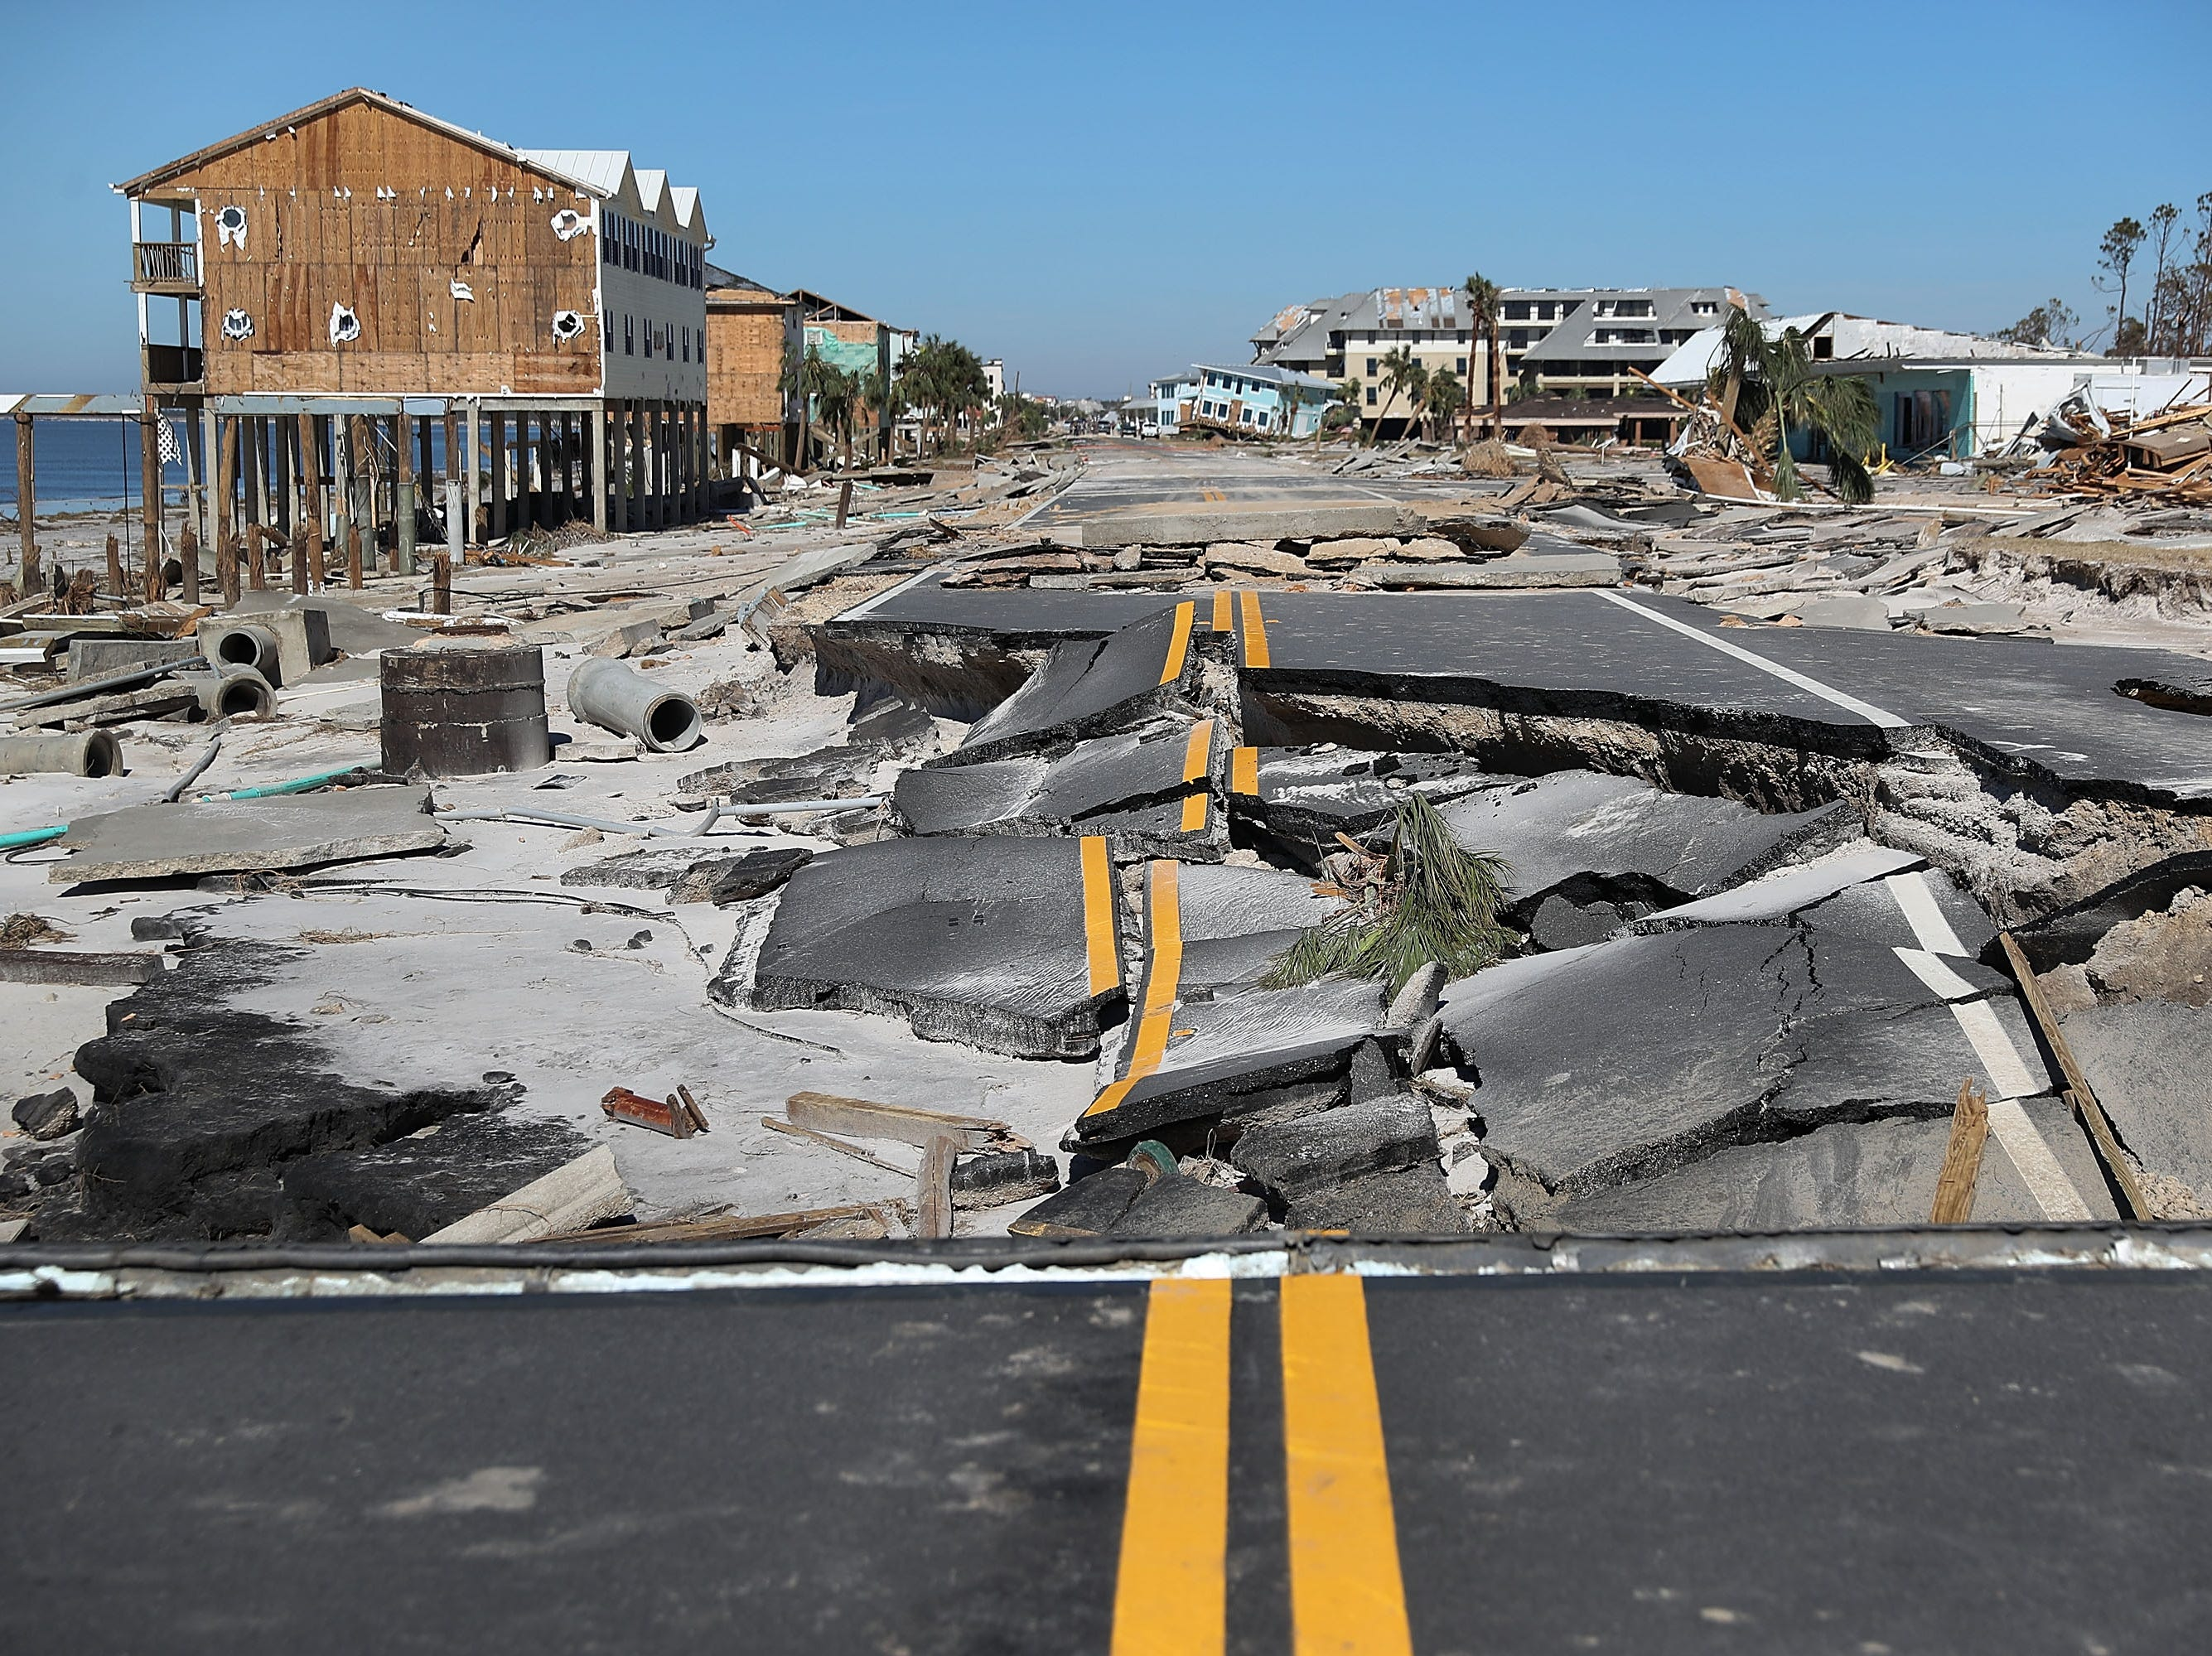 State Road 98 is torn up after Hurricane Michael passed through the area on Oct. 12, 2018 in Mexico Beach, Fl.  The hurricane hit the panhandle area with category 4 winds causing major damage.